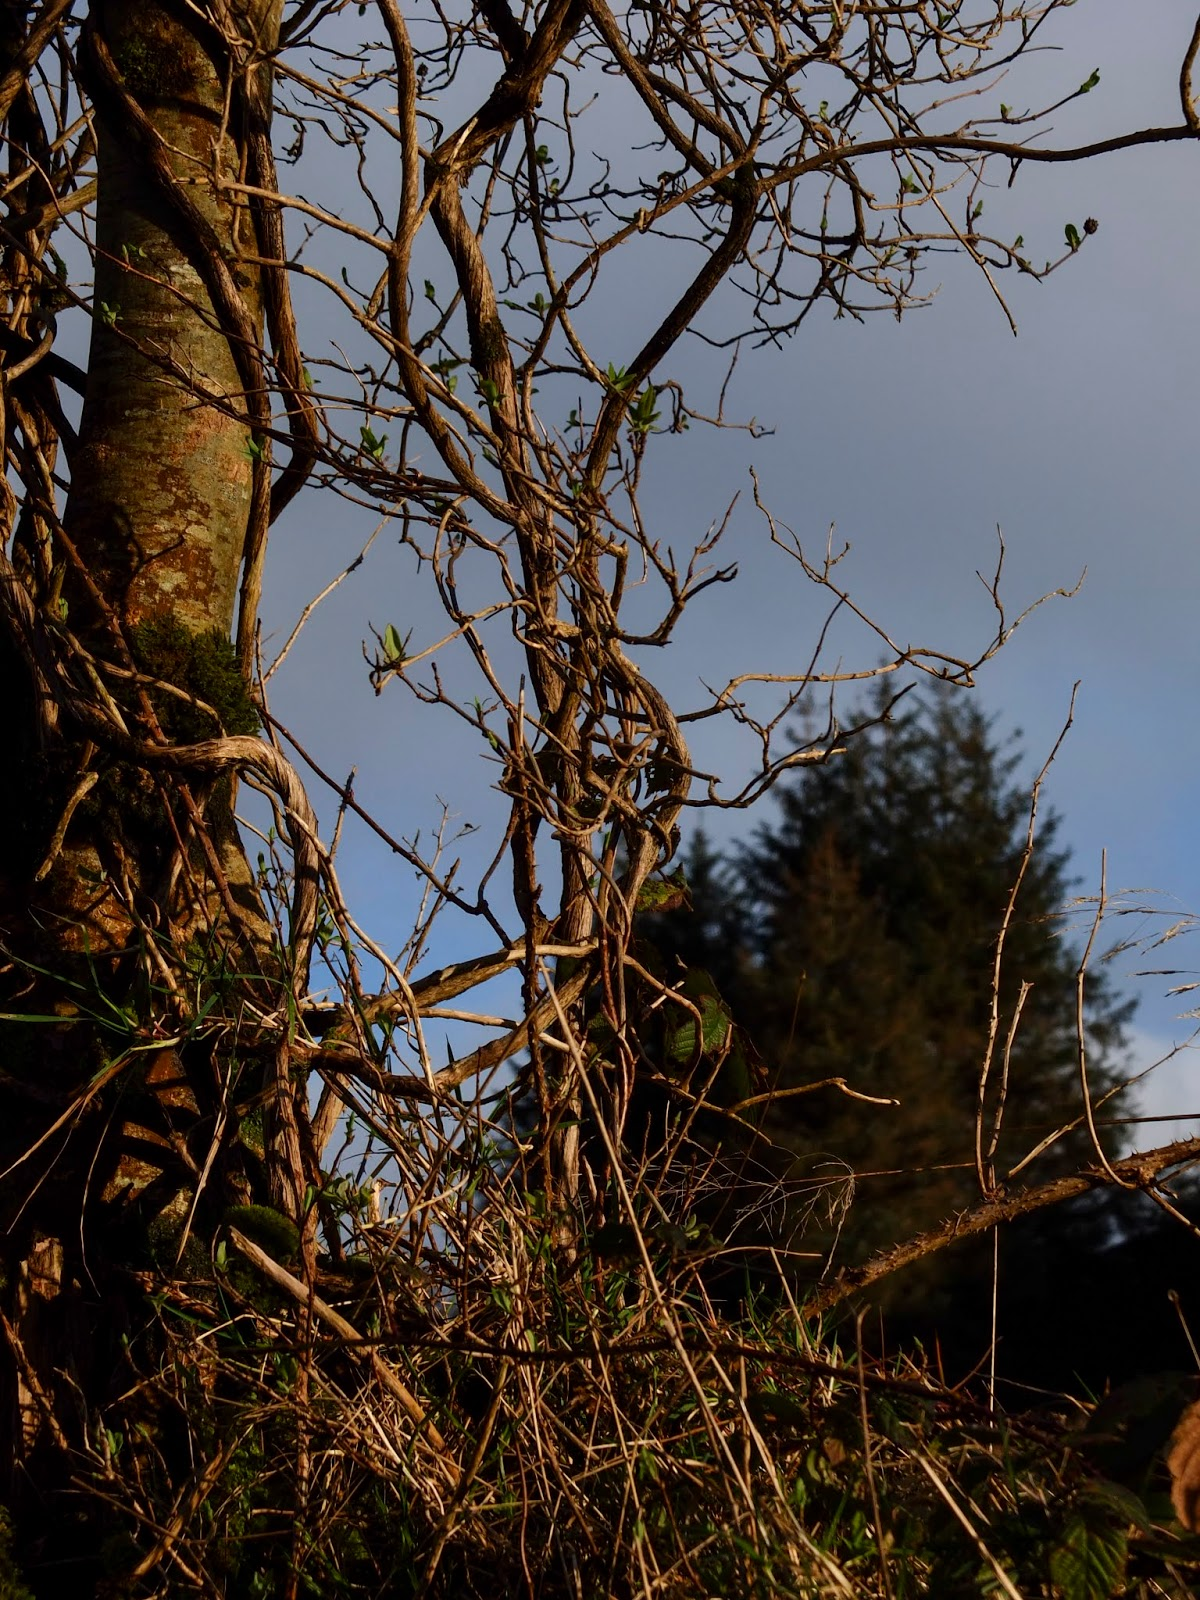 Tree trunk and some twisted branches in the sunlight with some conifer trees in the background.